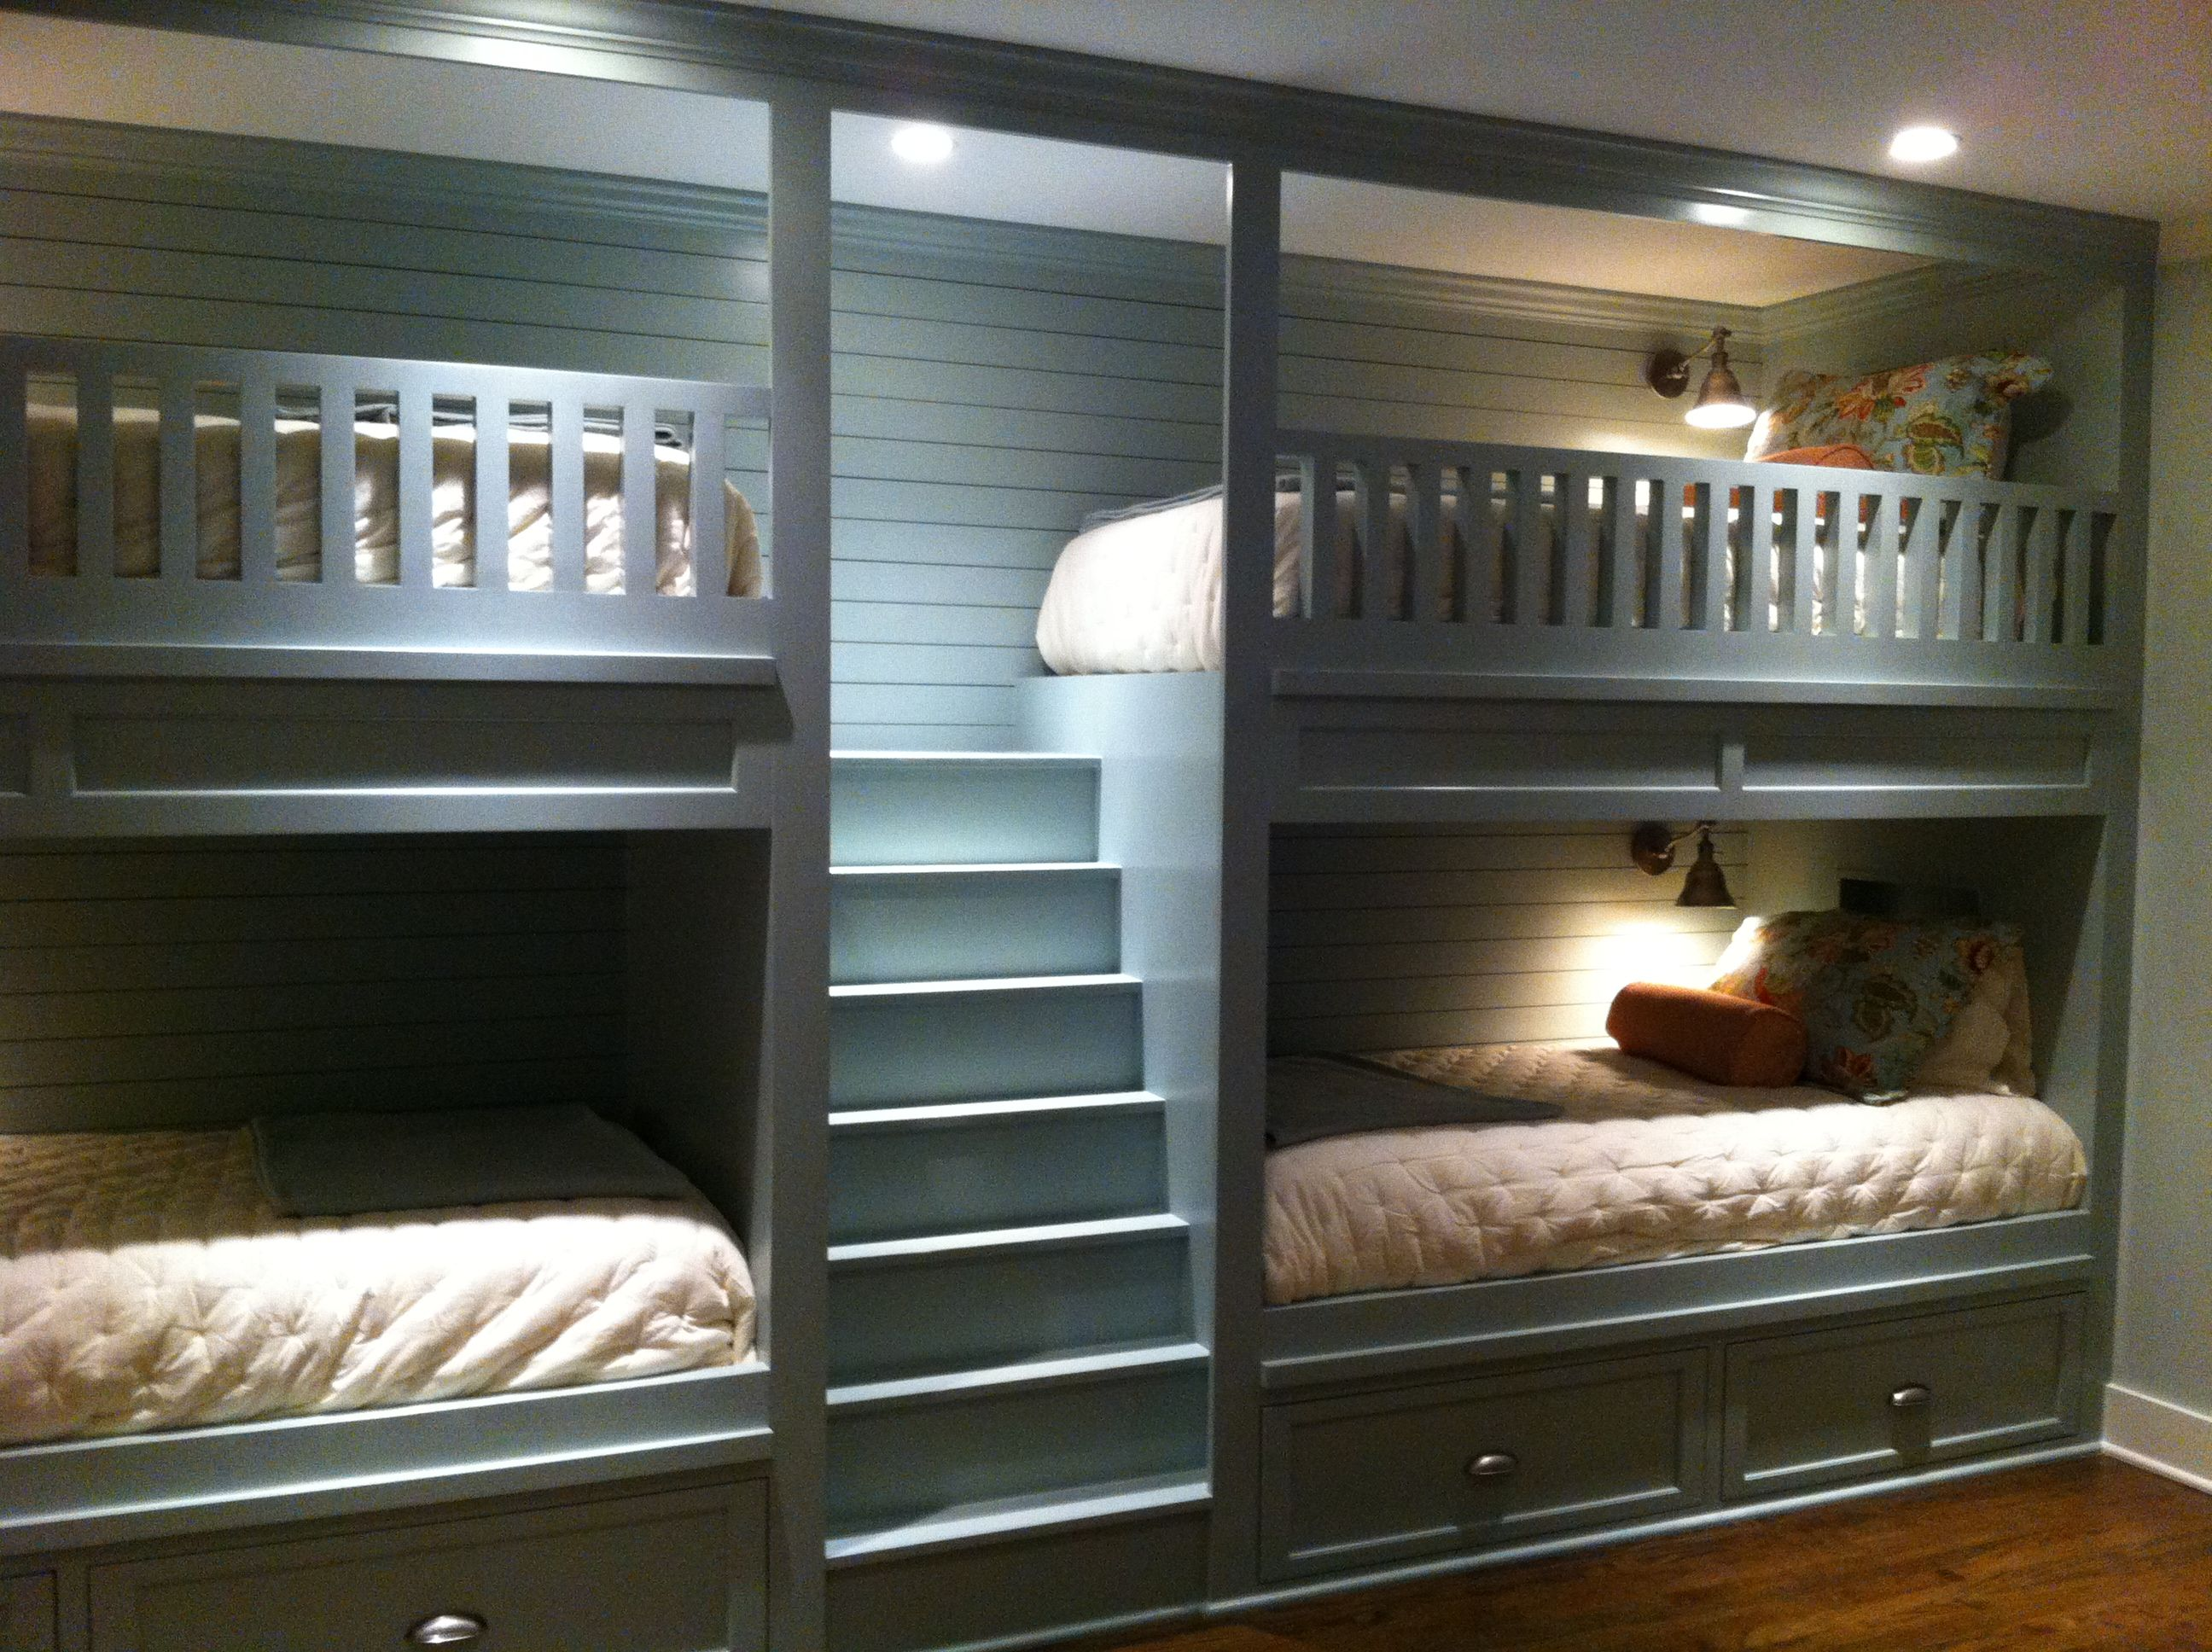 Double bunk beds in our new basement bunk room fun for for Best beds for small rooms